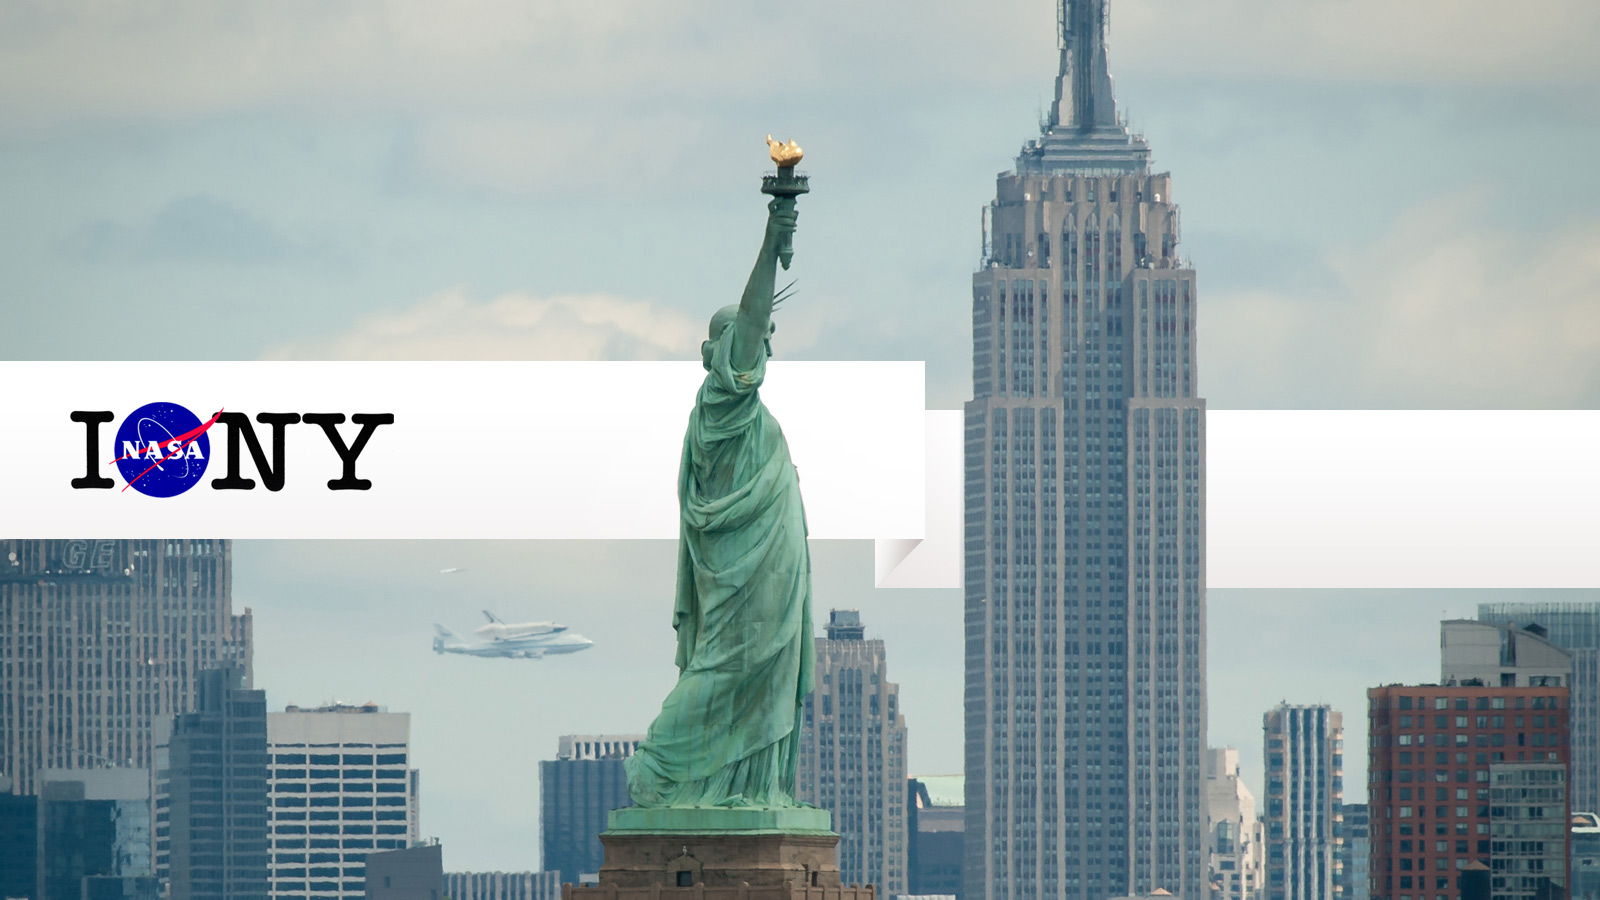 Click here to read The Best Photos of the Space Shuttle Flying Over New York City